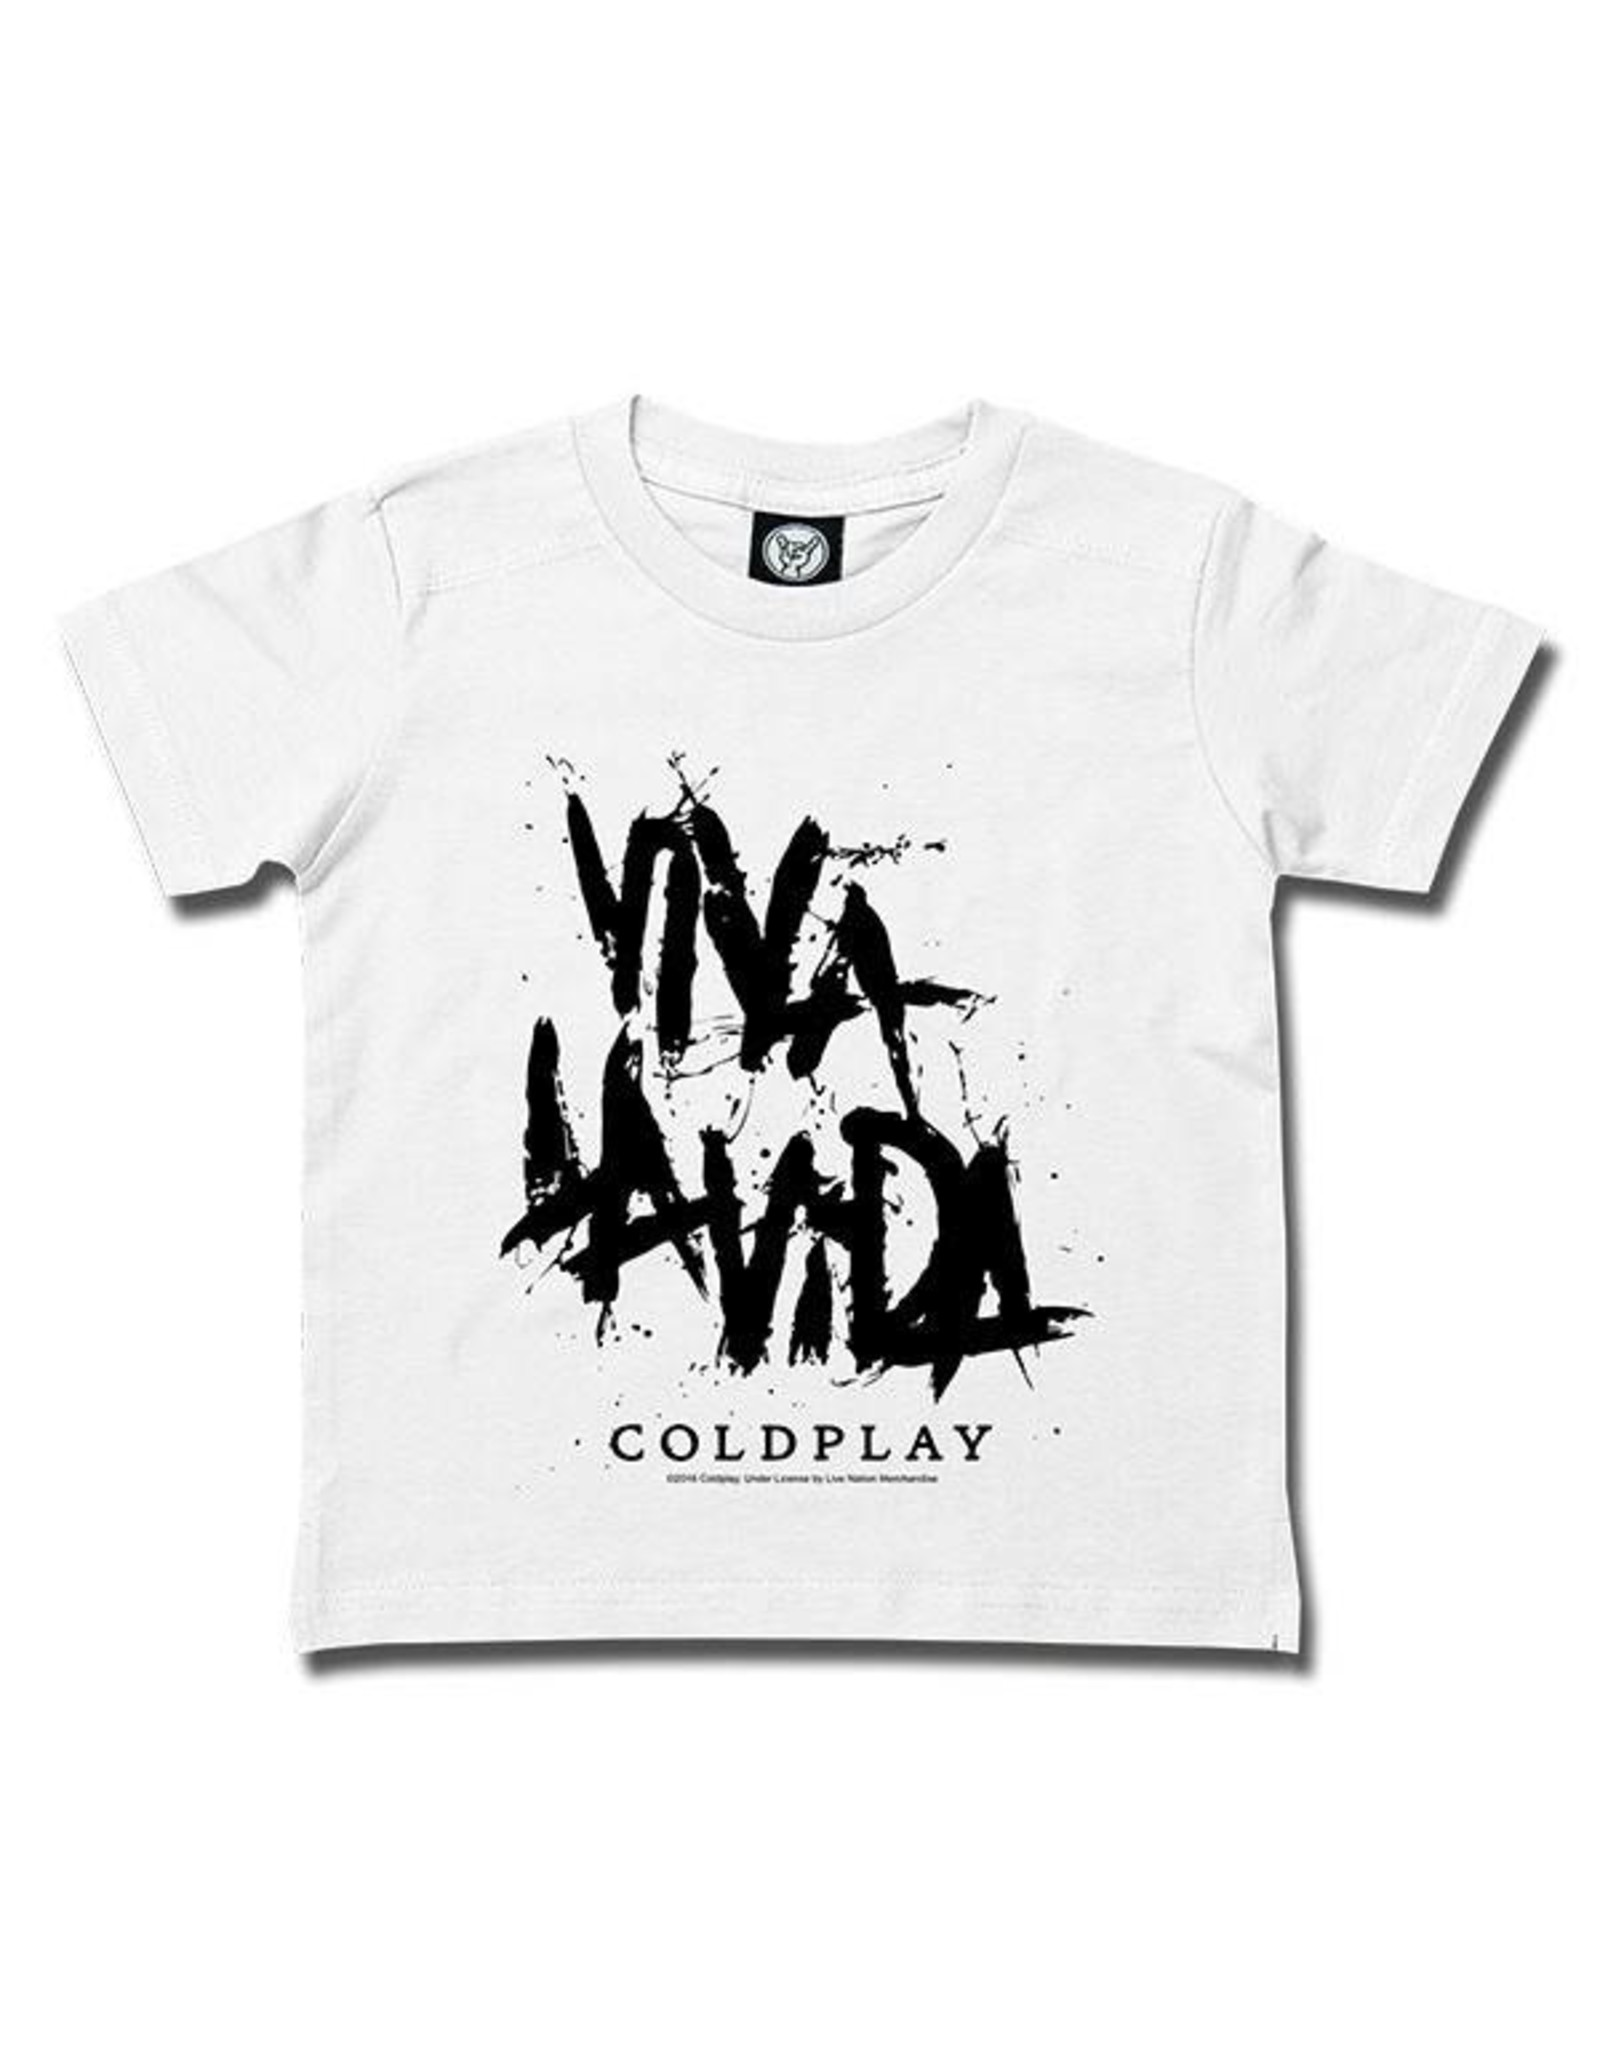 Coldplay (Viva la Vida) Kids T-Shirt